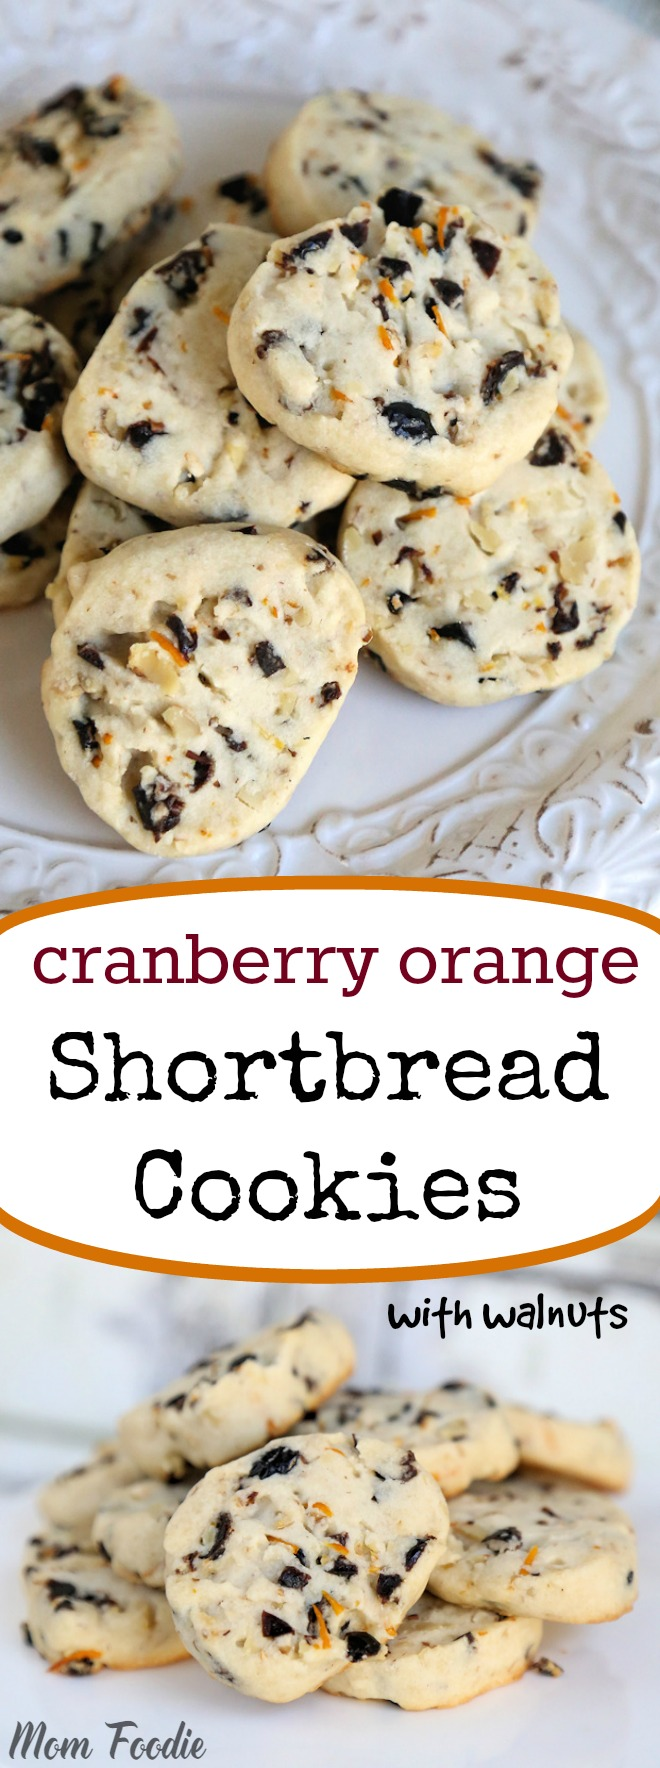 Cranberry Orange Shortbread Cookies with Walnuts recipe